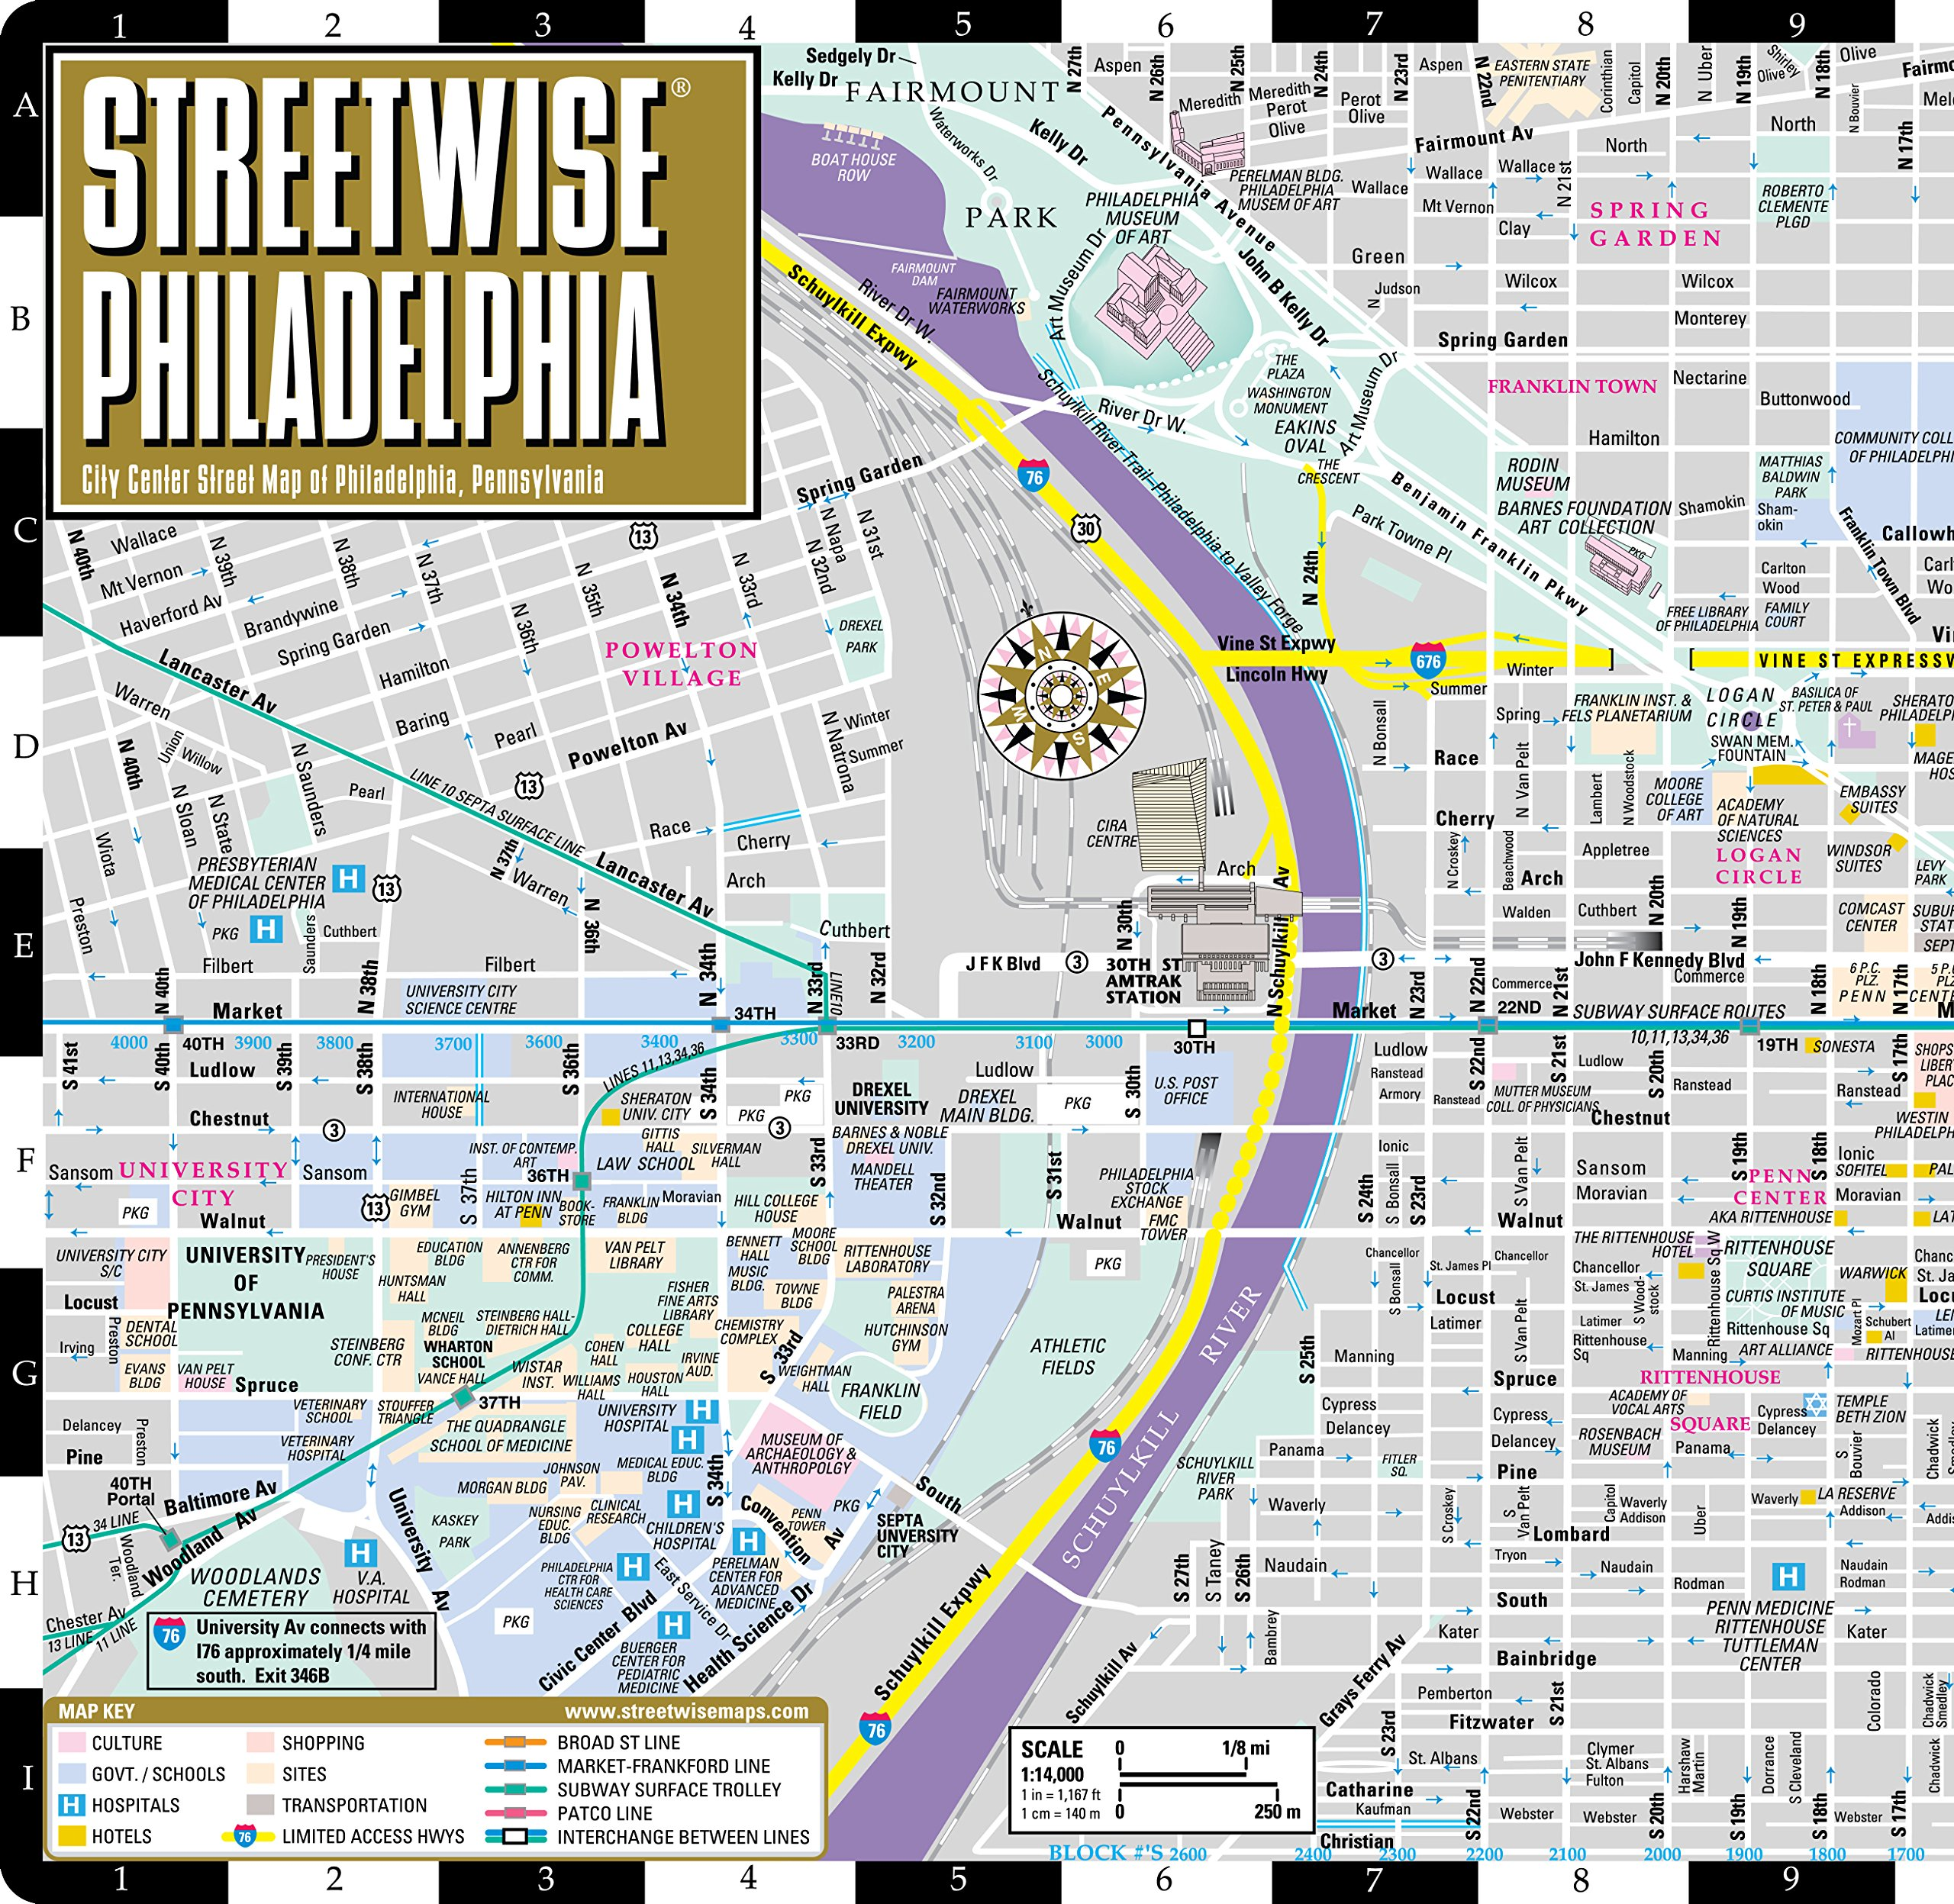 Philadelphia Street Map Streetwise Philadelphia Map   Laminated City Center Street Map of  Philadelphia Street Map